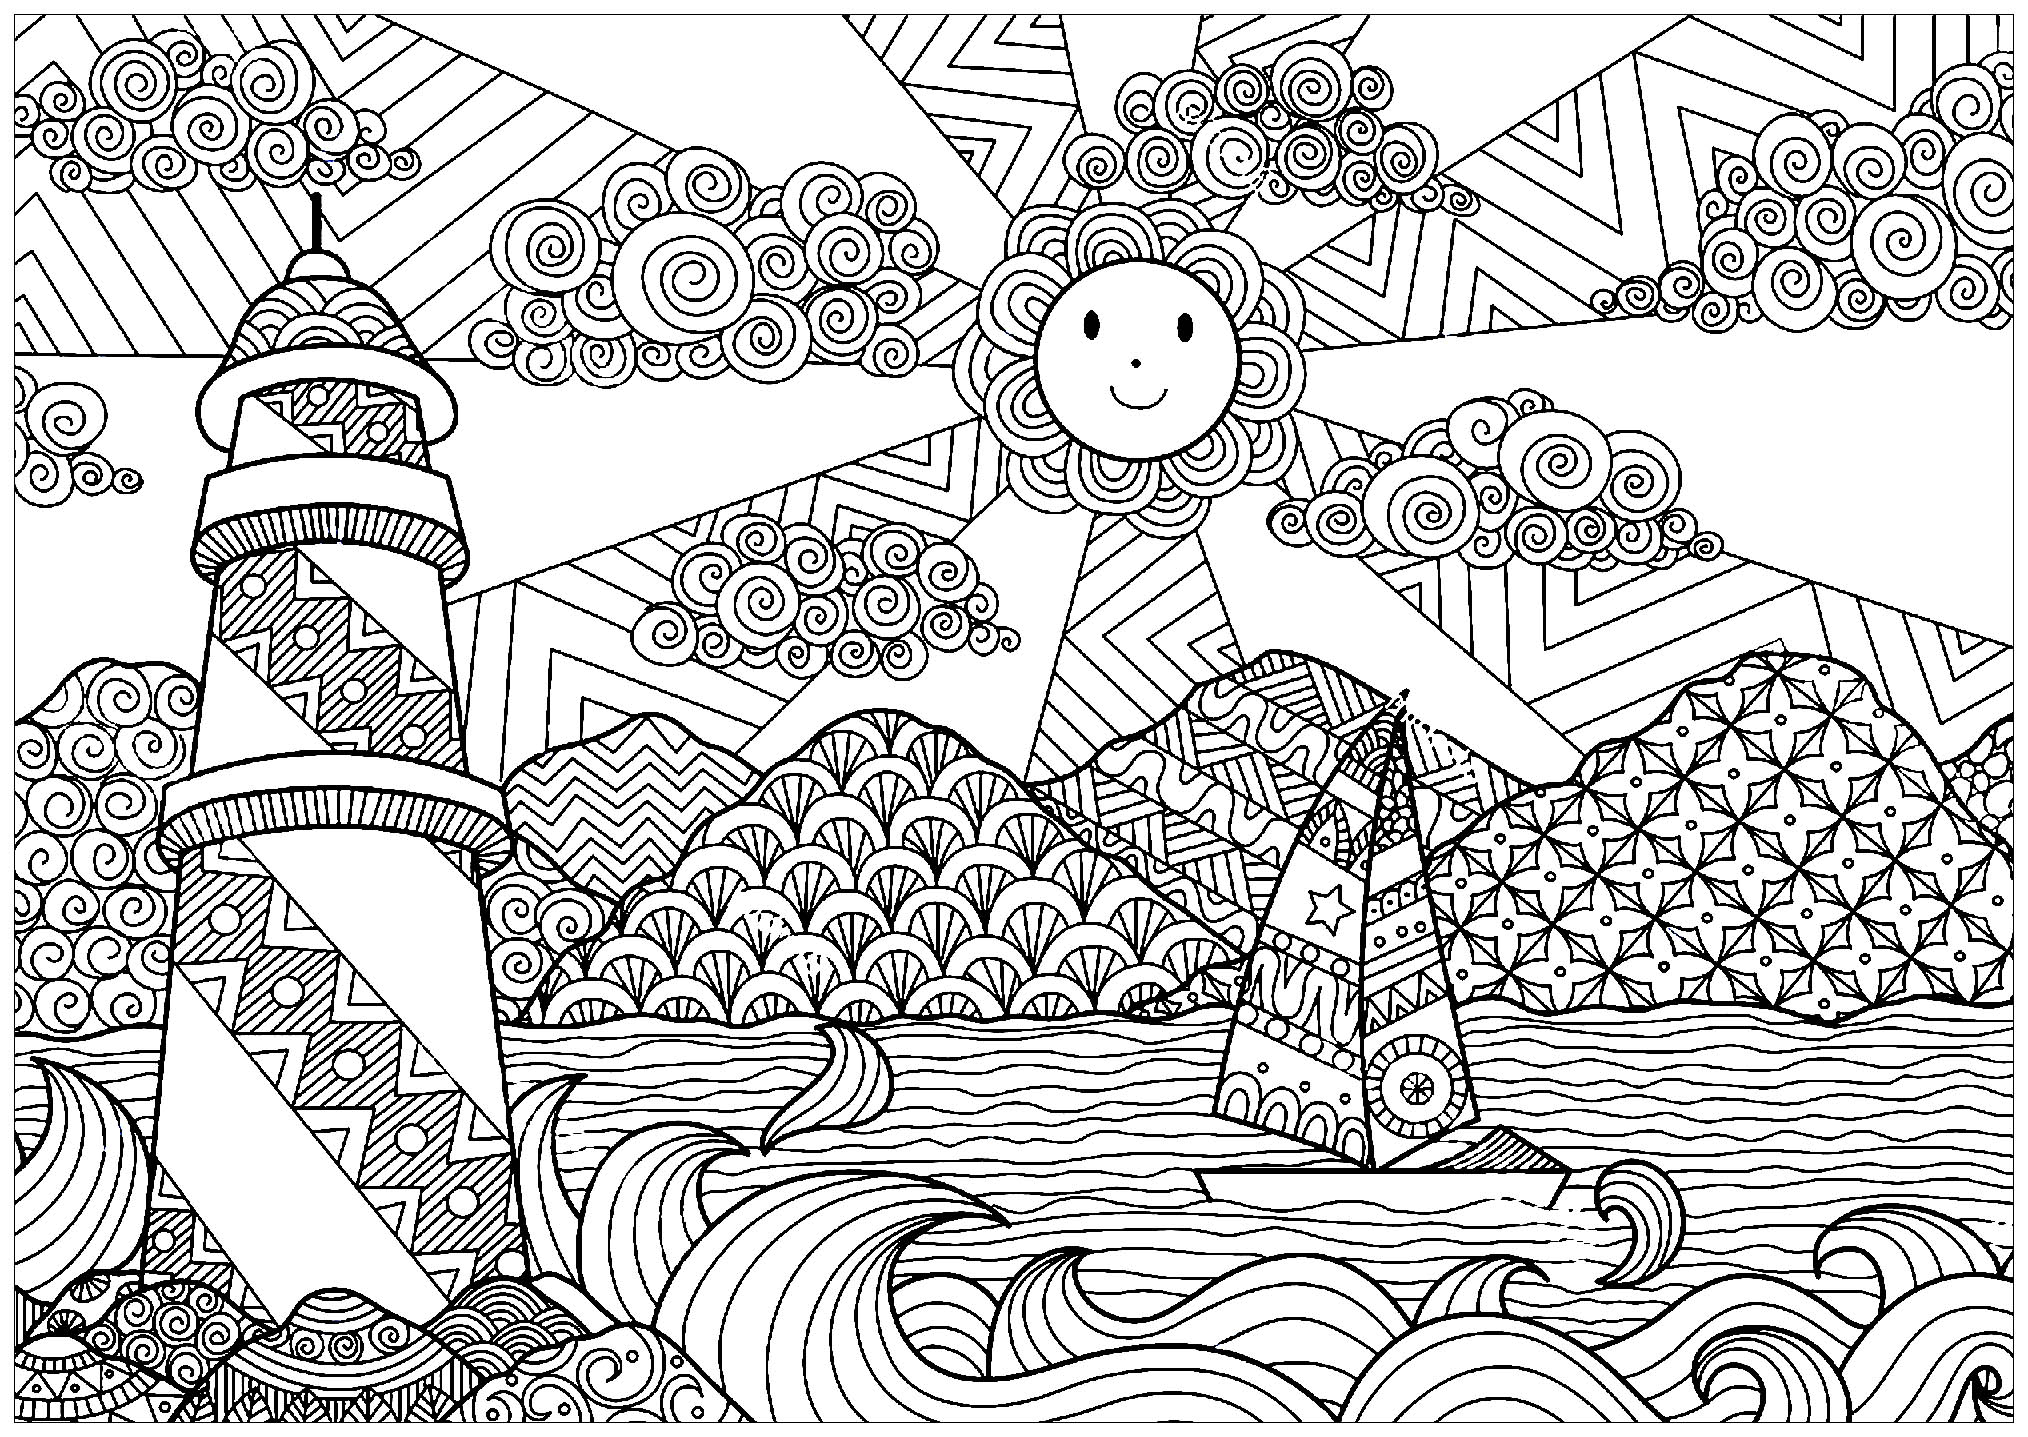 Seascape With Lighhouse And Sun Landscapes Coloring Pages For